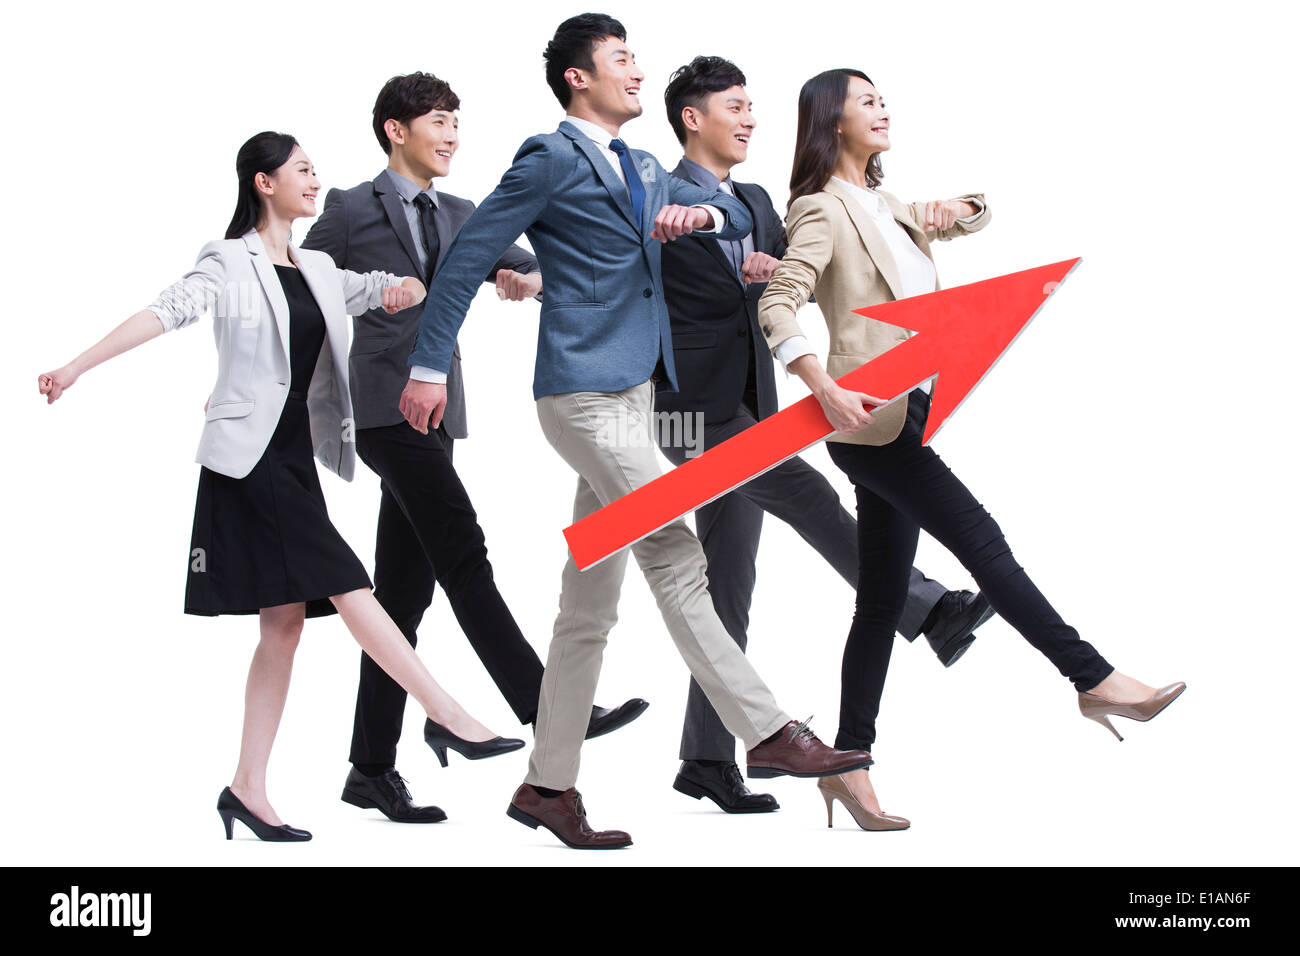 Young businessperson stepping forward with red arrow sign - Stock Image